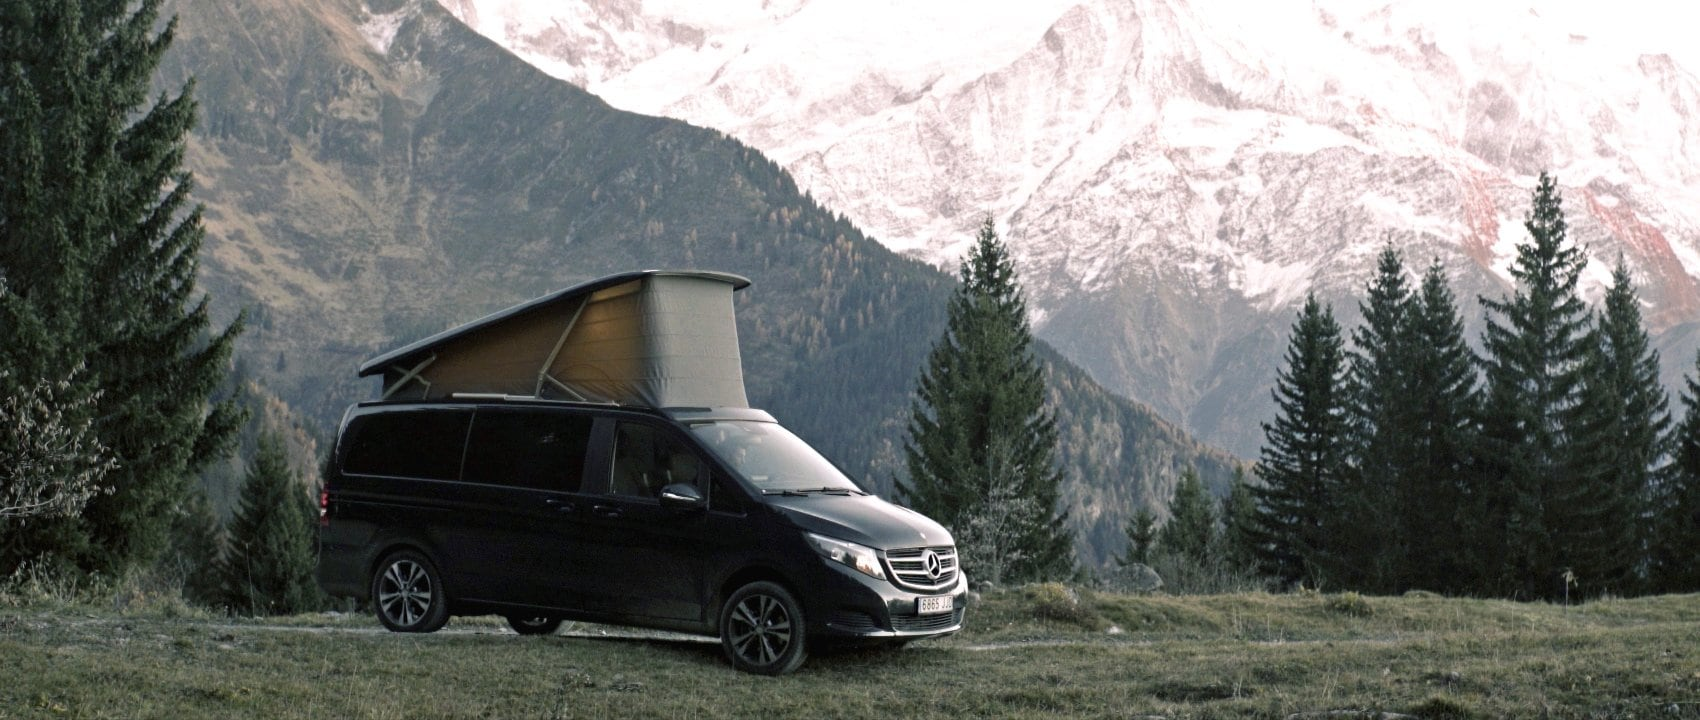 The Mercedes-Benz Marco Polo (BR 447) in the mountains.